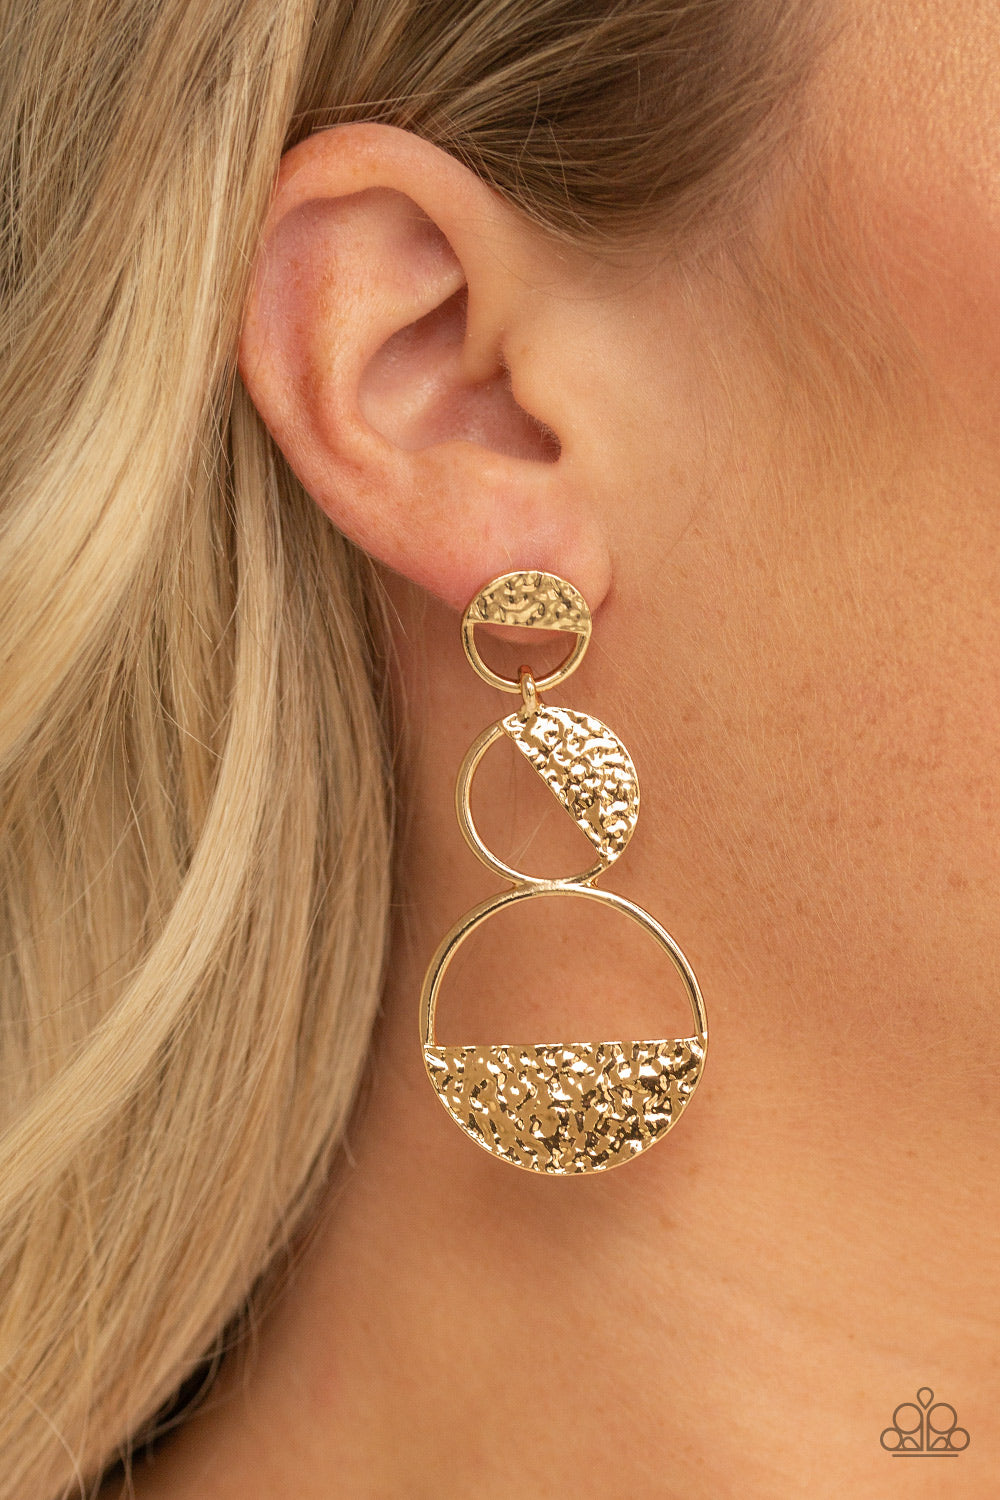 Paparazzi Accessories Trifecta - Gold Earrings - Lady T Accessories